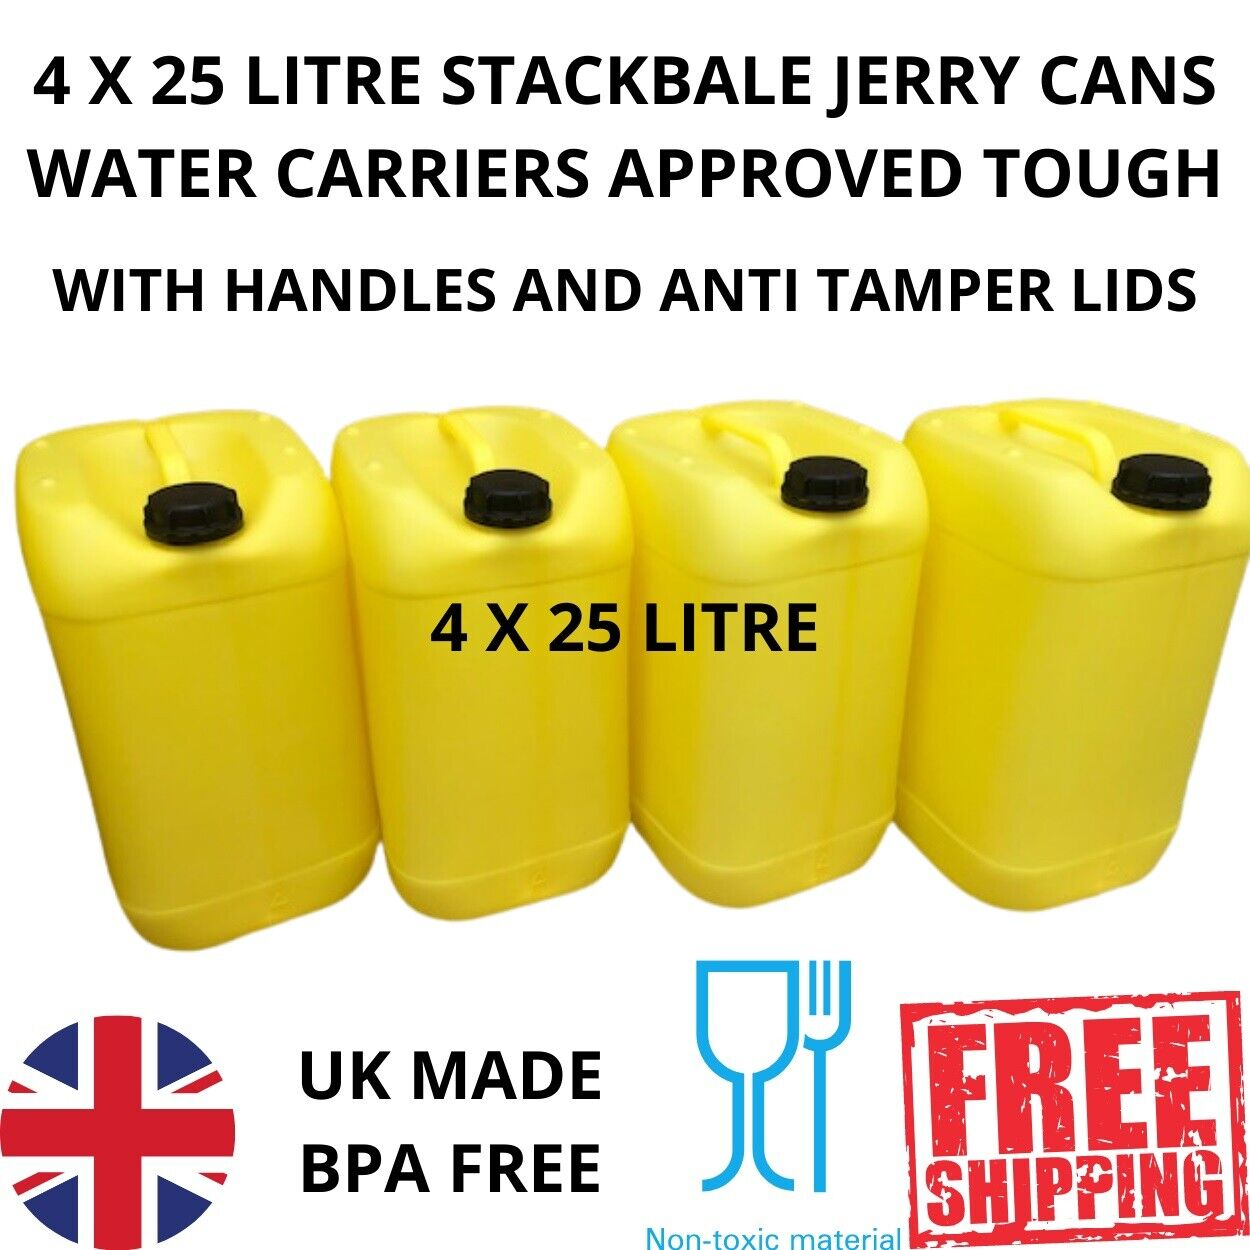 25 litre new plastic bottle jerry can water carrier approved tough yellow